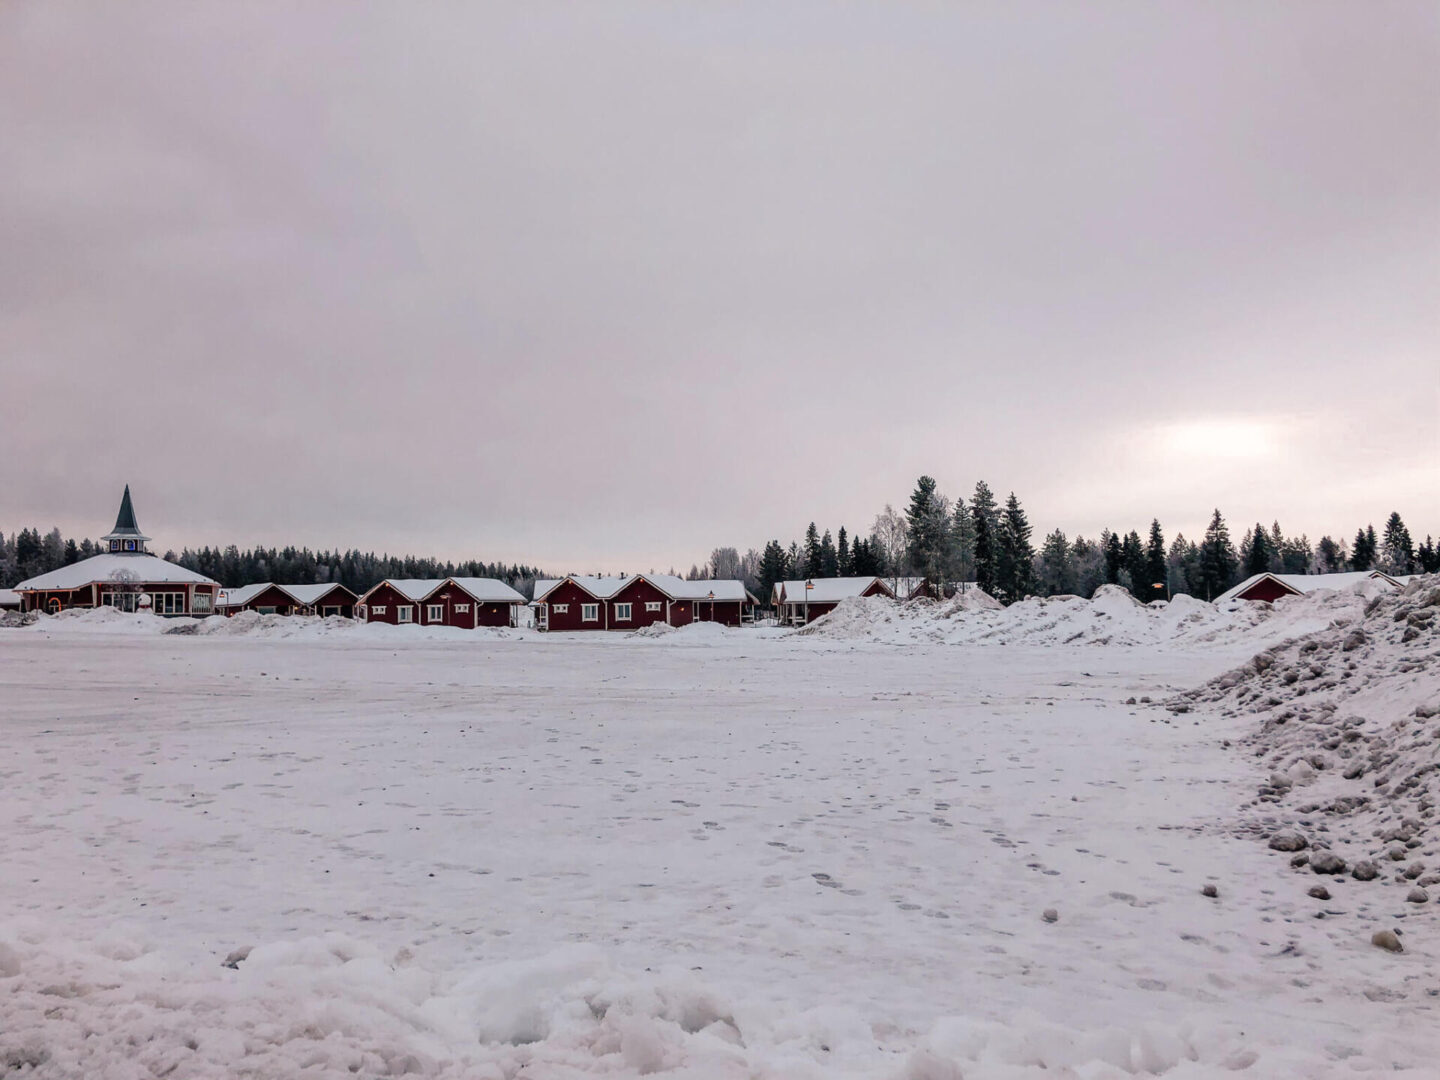 A snow field with red houses in the background